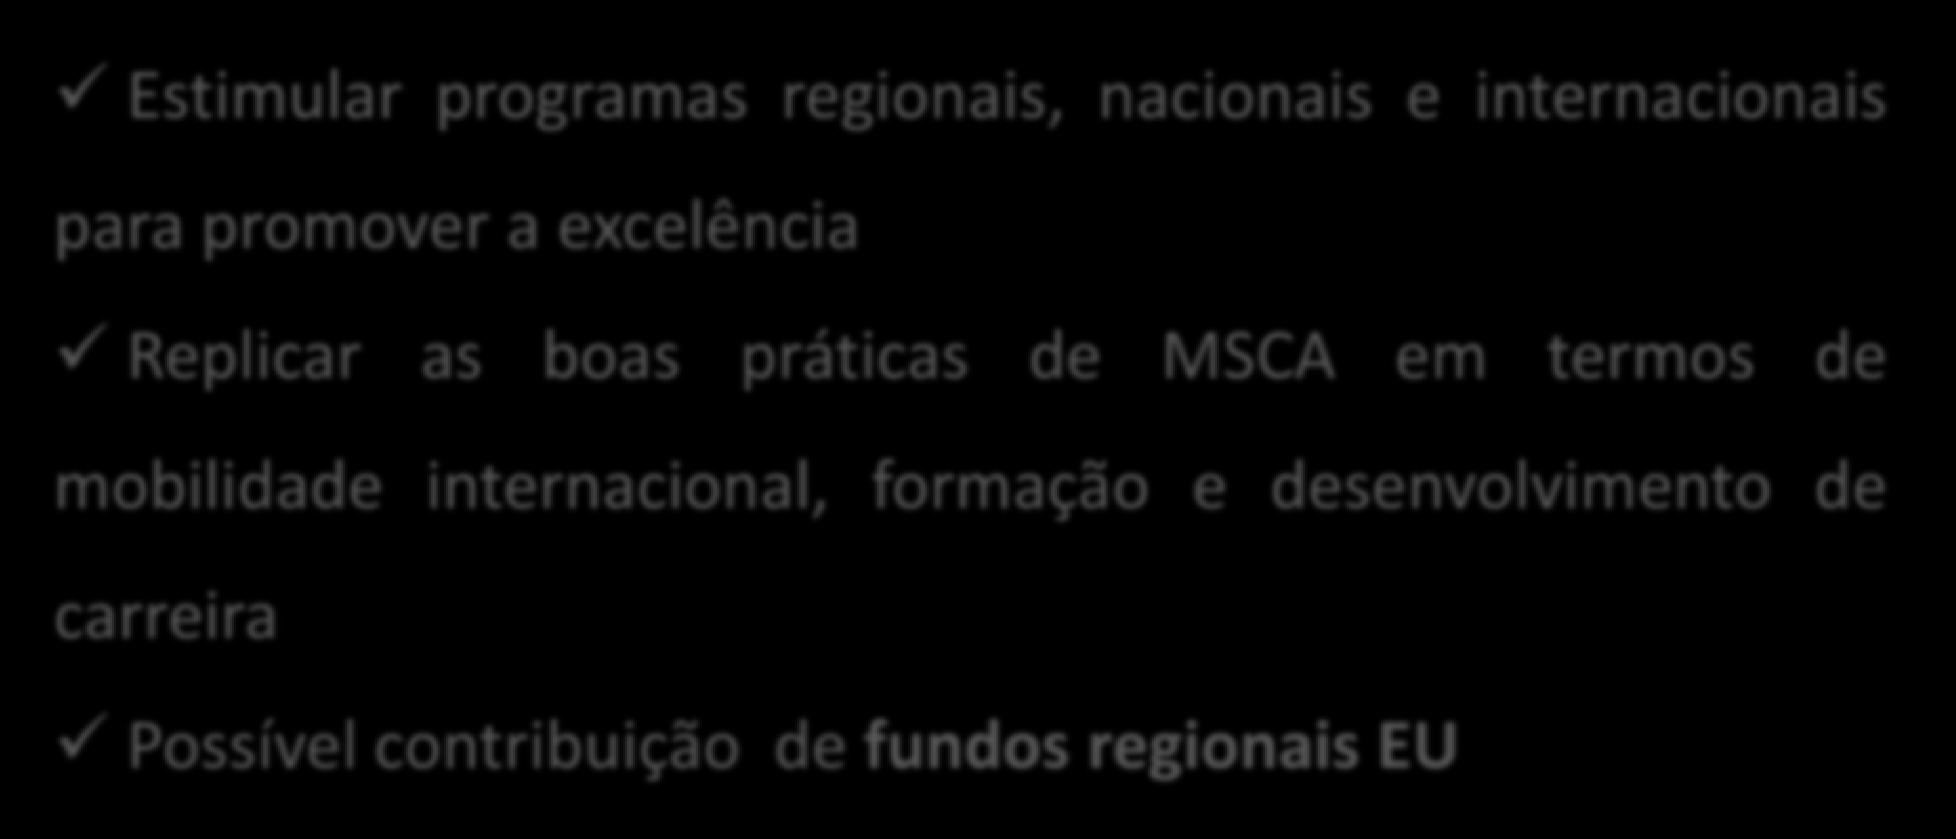 Co-funding of regional, national and international programmes (COFUND) Estimular programas regionais, nacionais e internacionais para promover a excelência